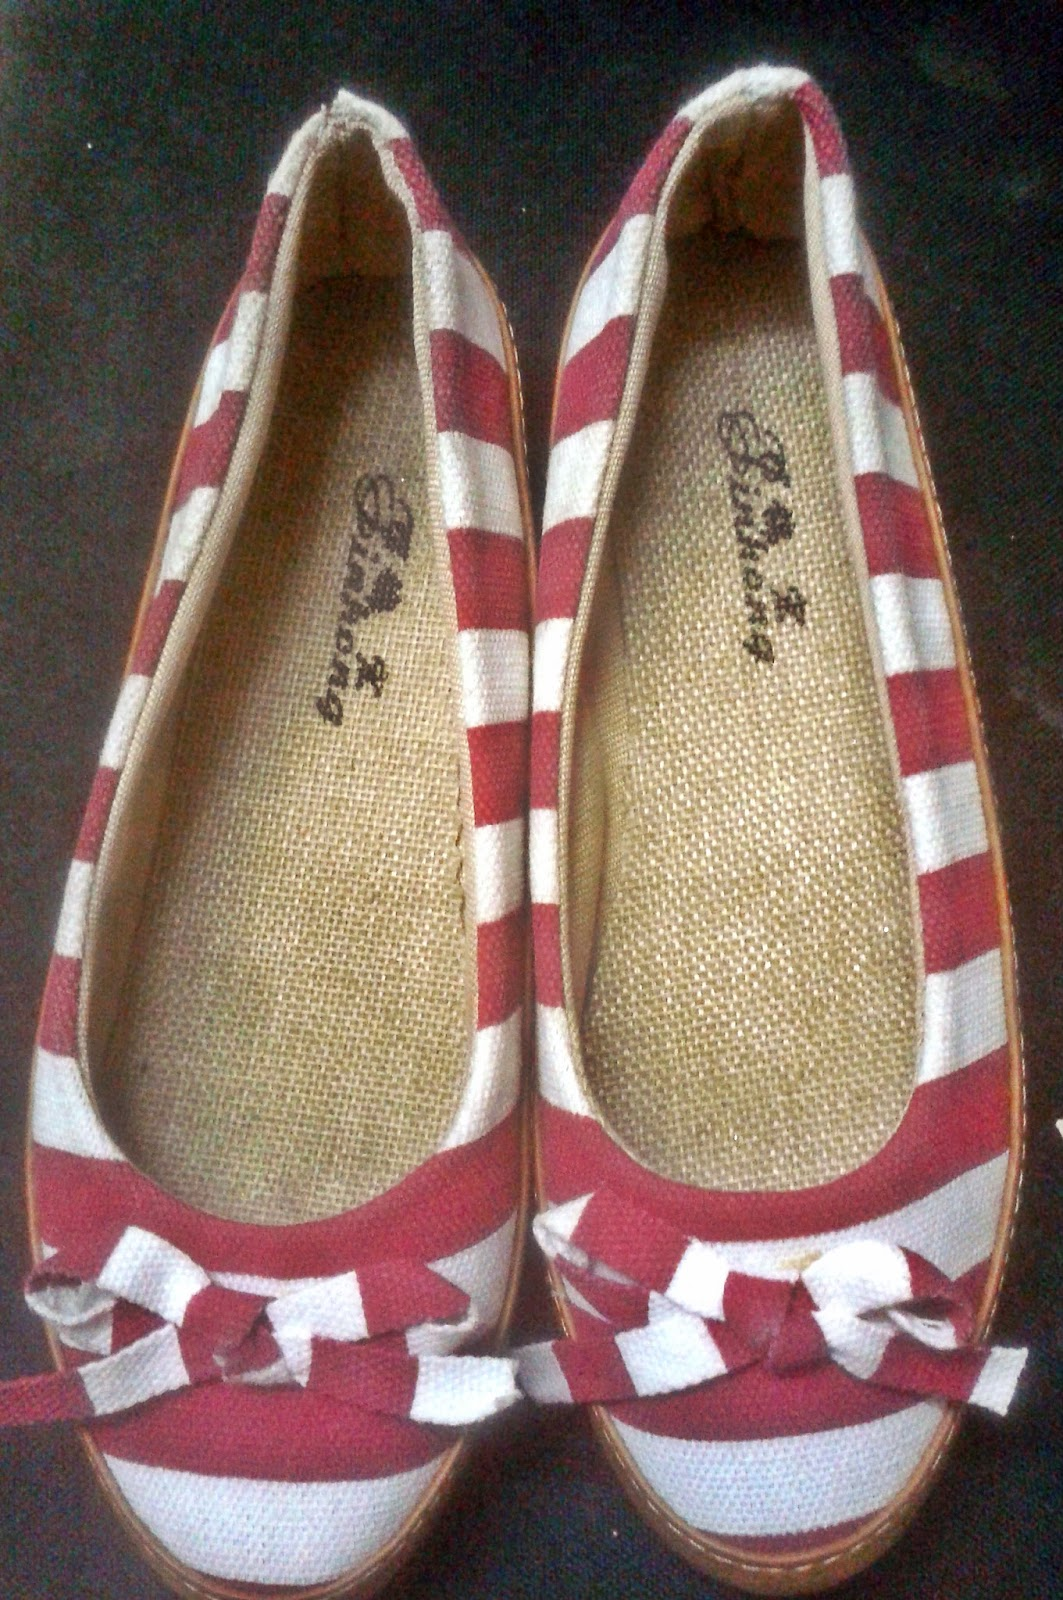 mumbai street shopping, red stripes, canvas shoes, ballet flats